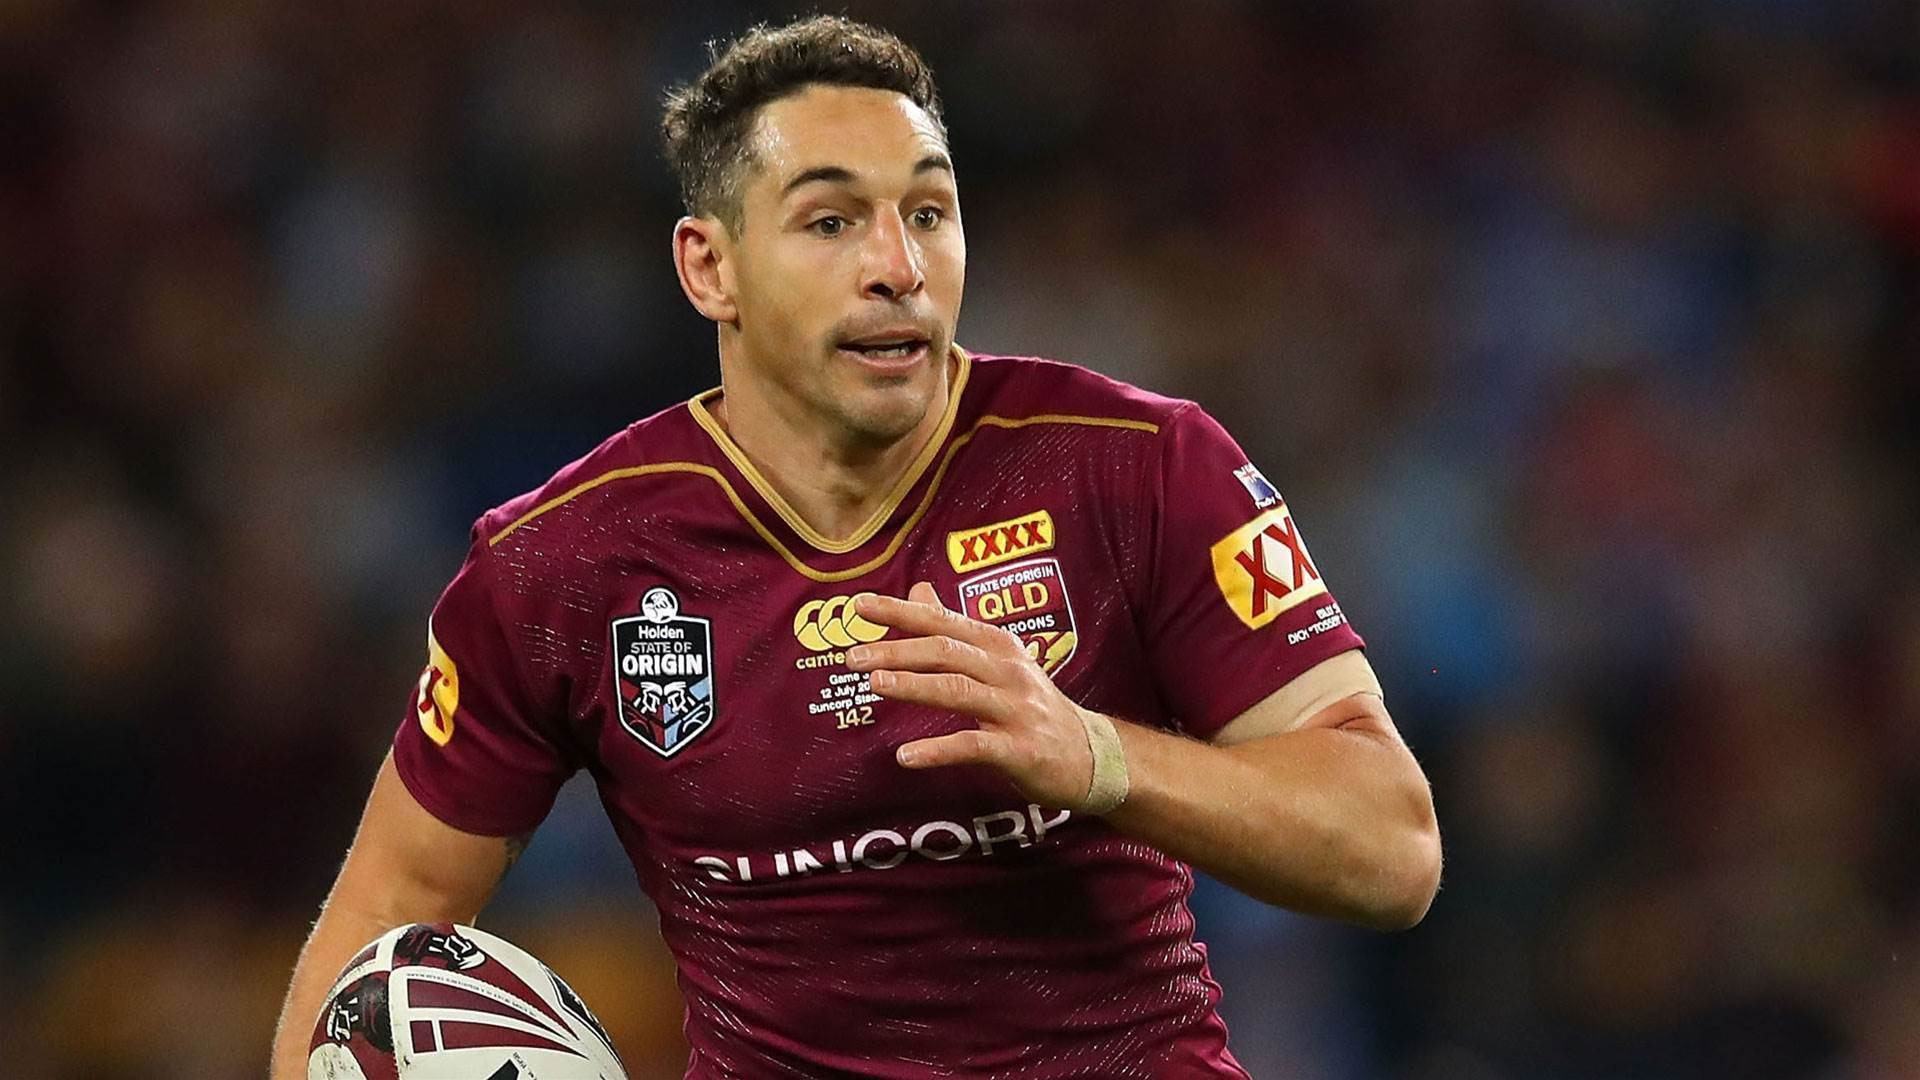 The fullback life chose me: Billy Slater